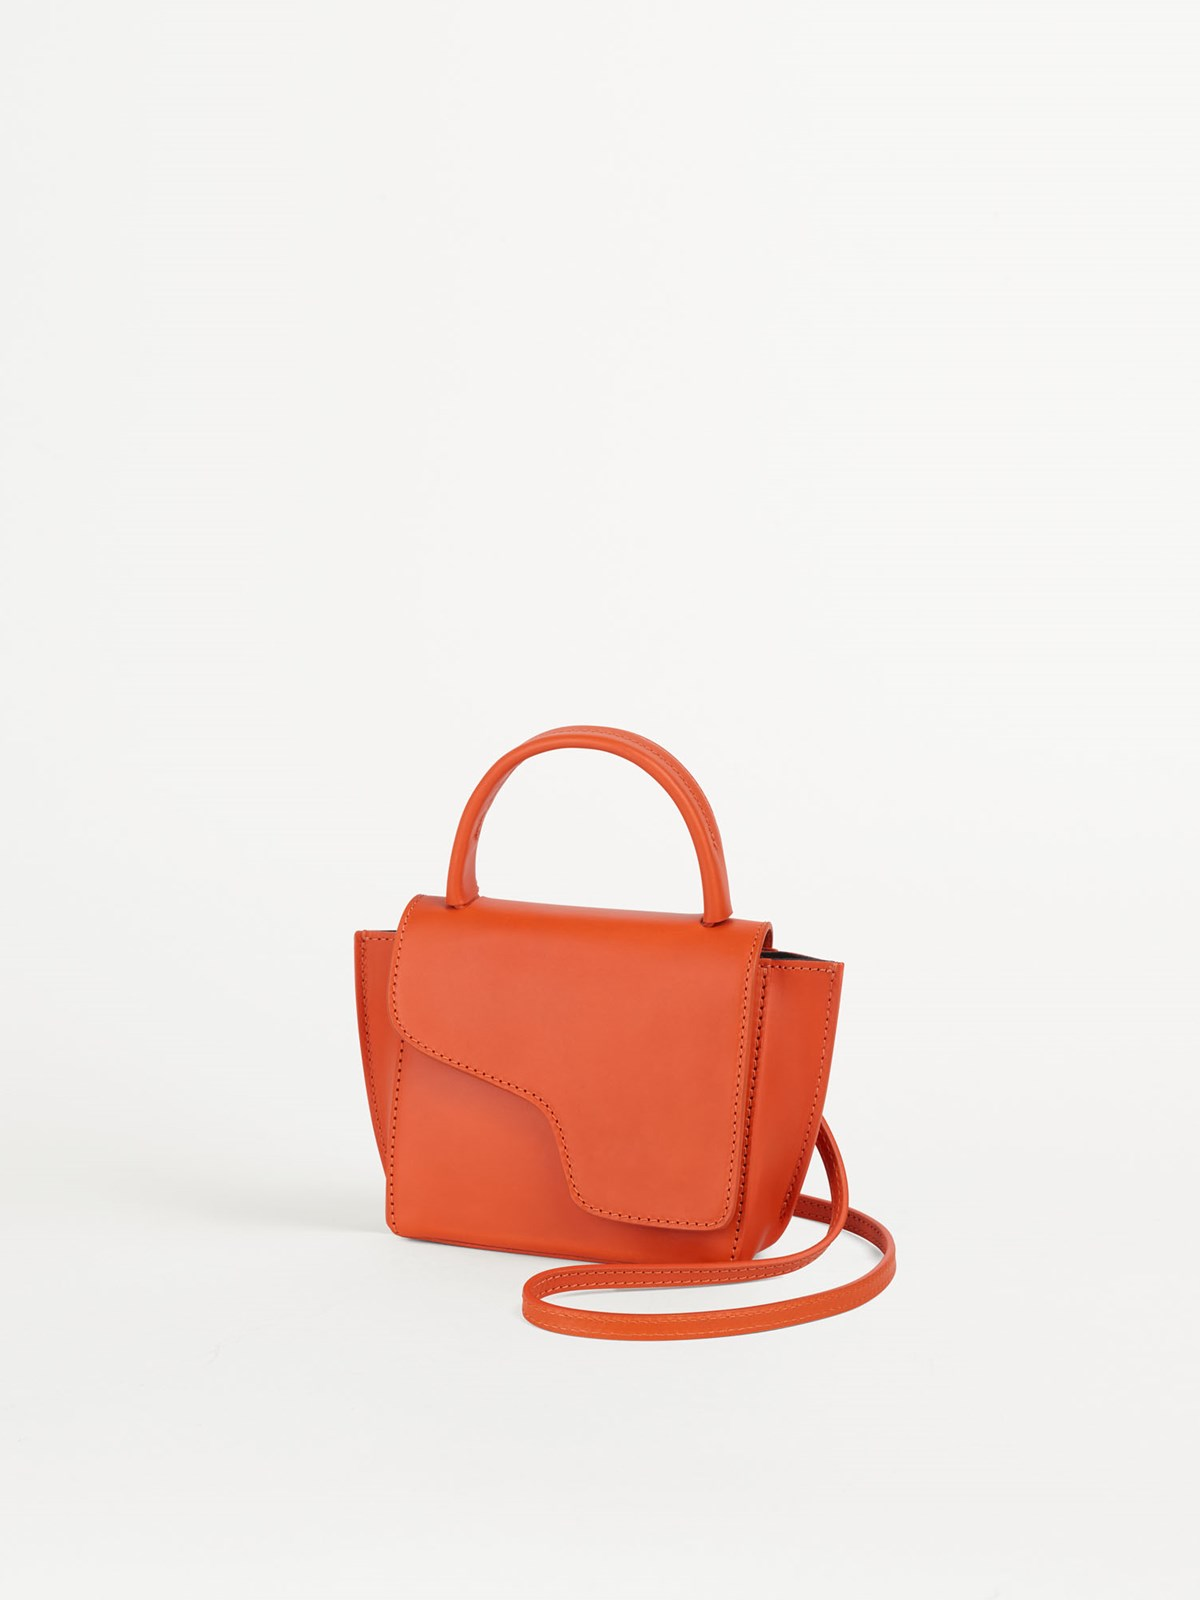 Montalcino Orange Mini handbag